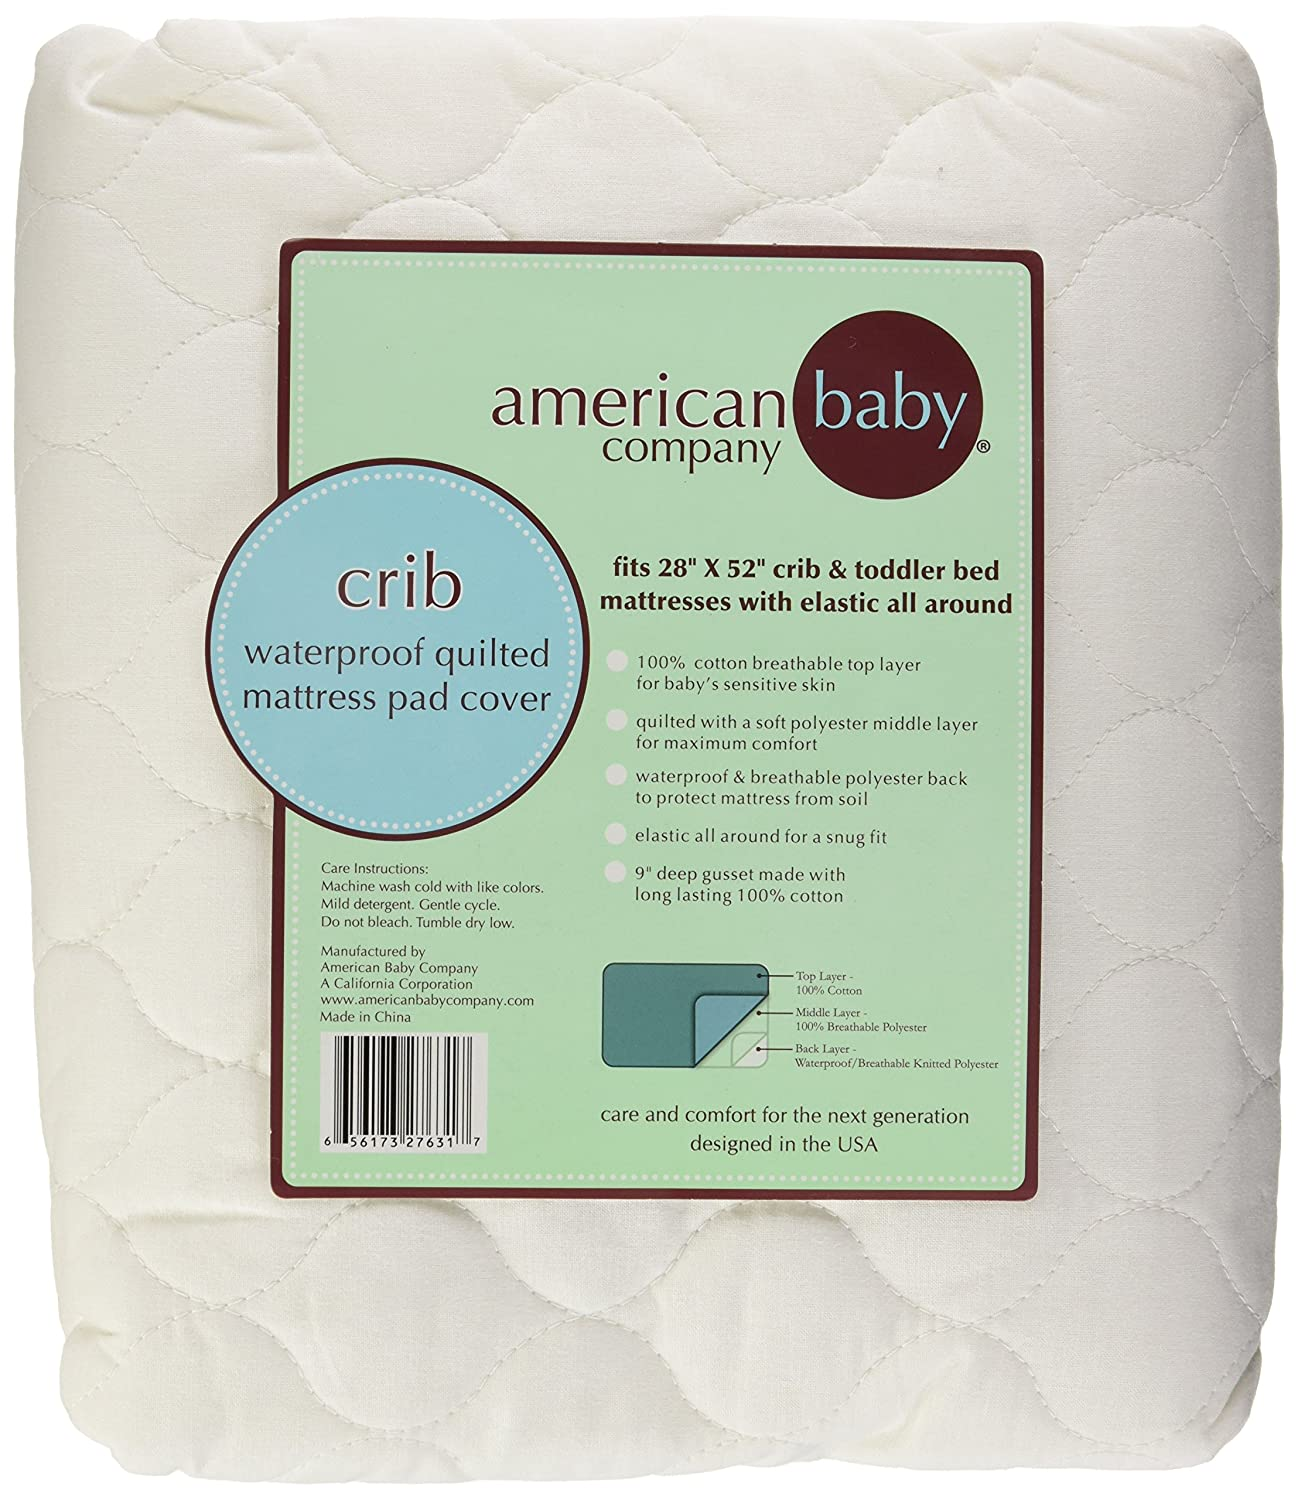 American Baby Company Extra Durable Waterproof Quilted Cotton Crib Mattress Pad Cover White Amazonca